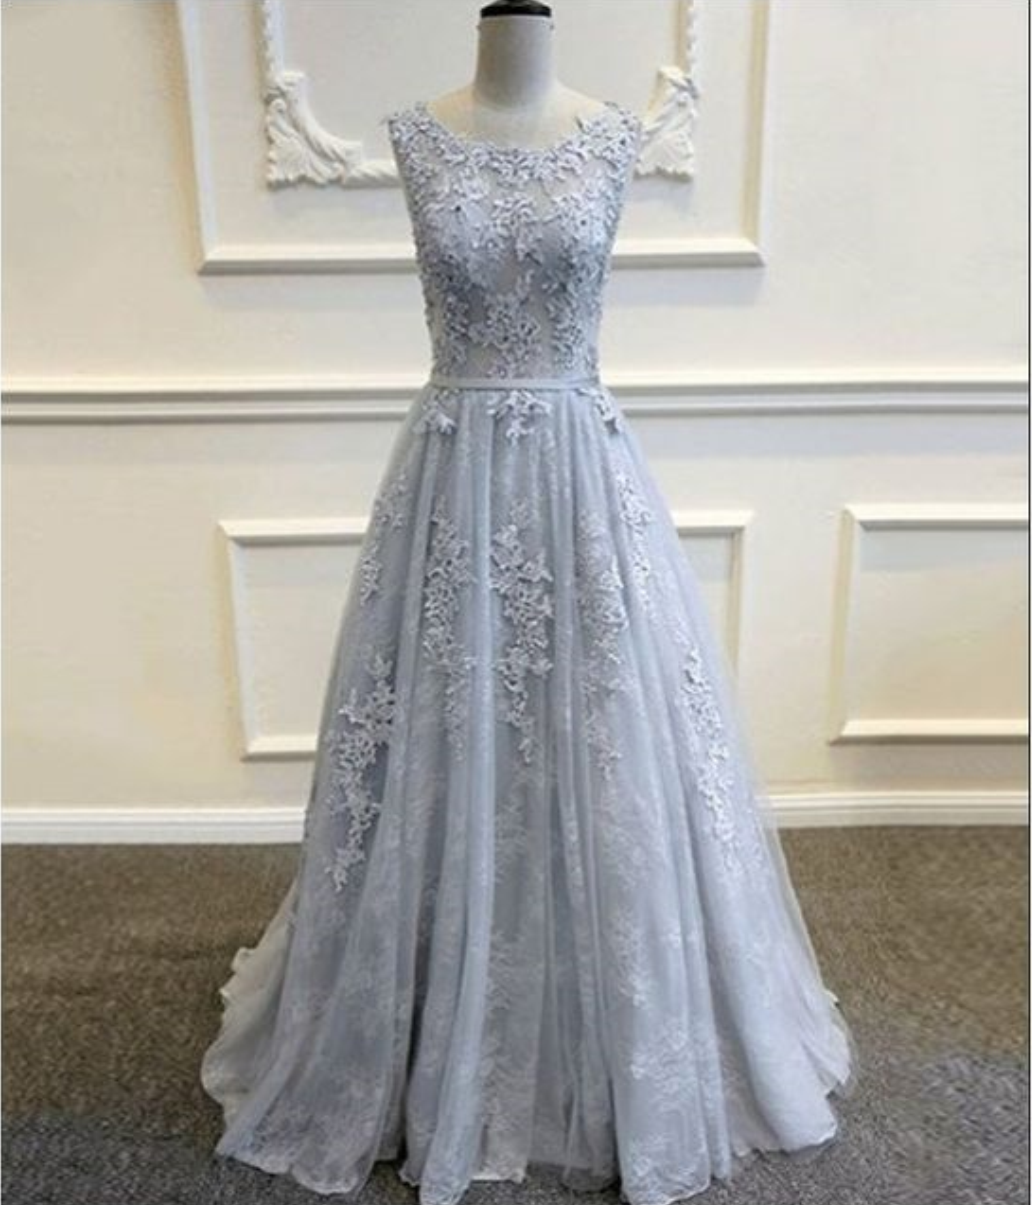 Lace Prom Dresses Long Evening Party Gowns Tulle Maxi Wedding ...